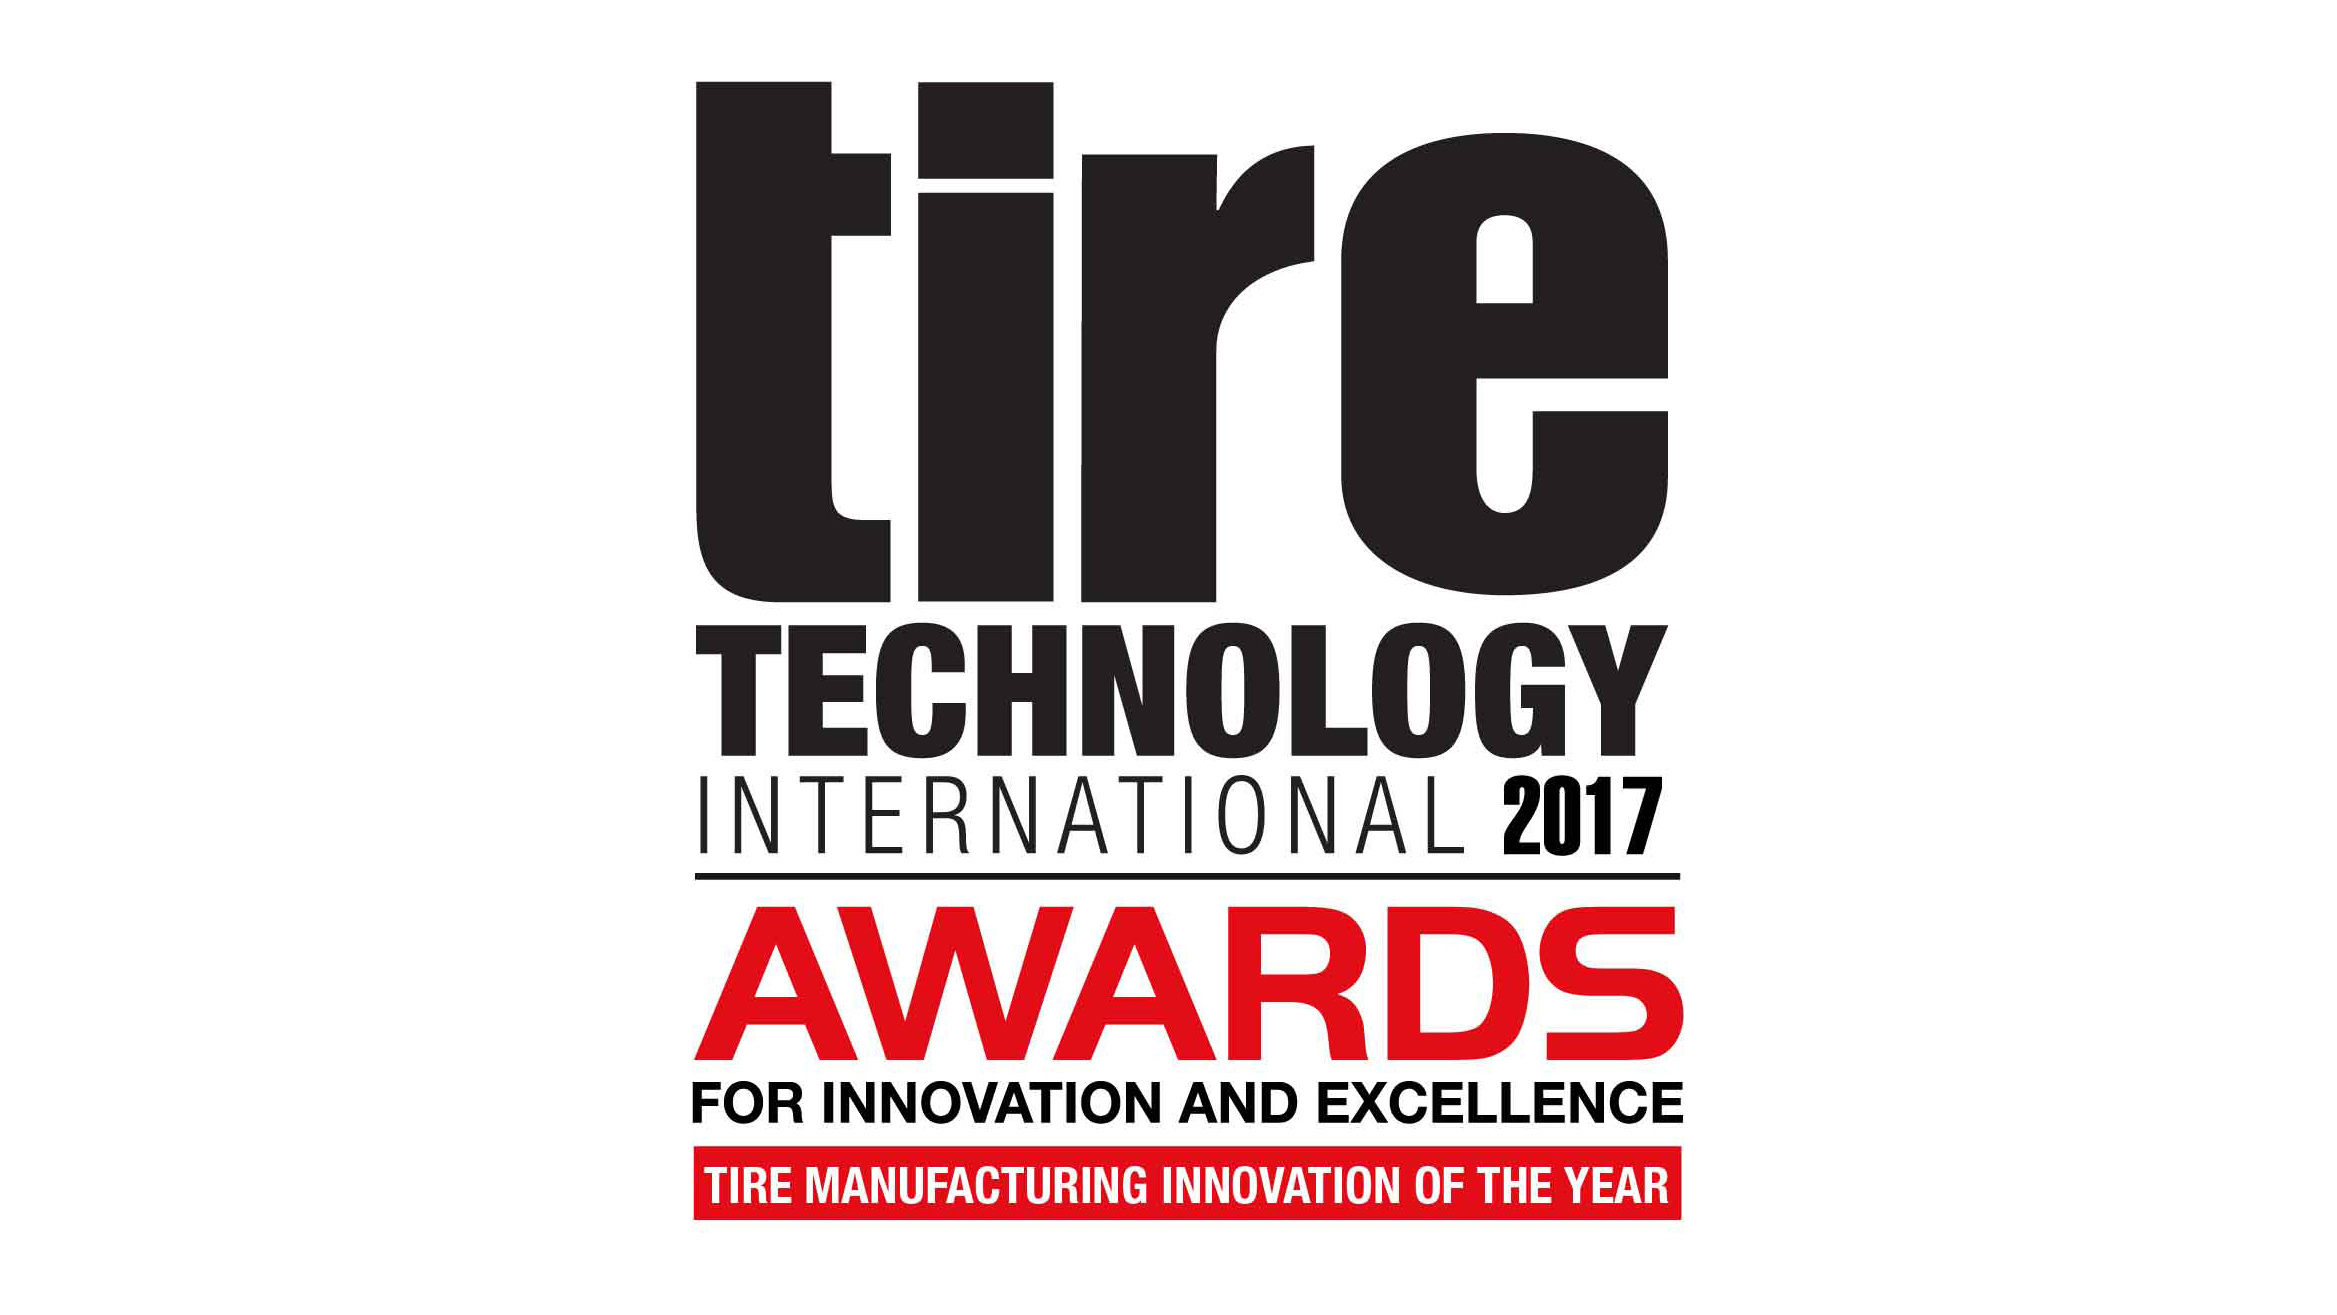 Bridgestone tire building system named Tire Manufacturing Innovation of the Year